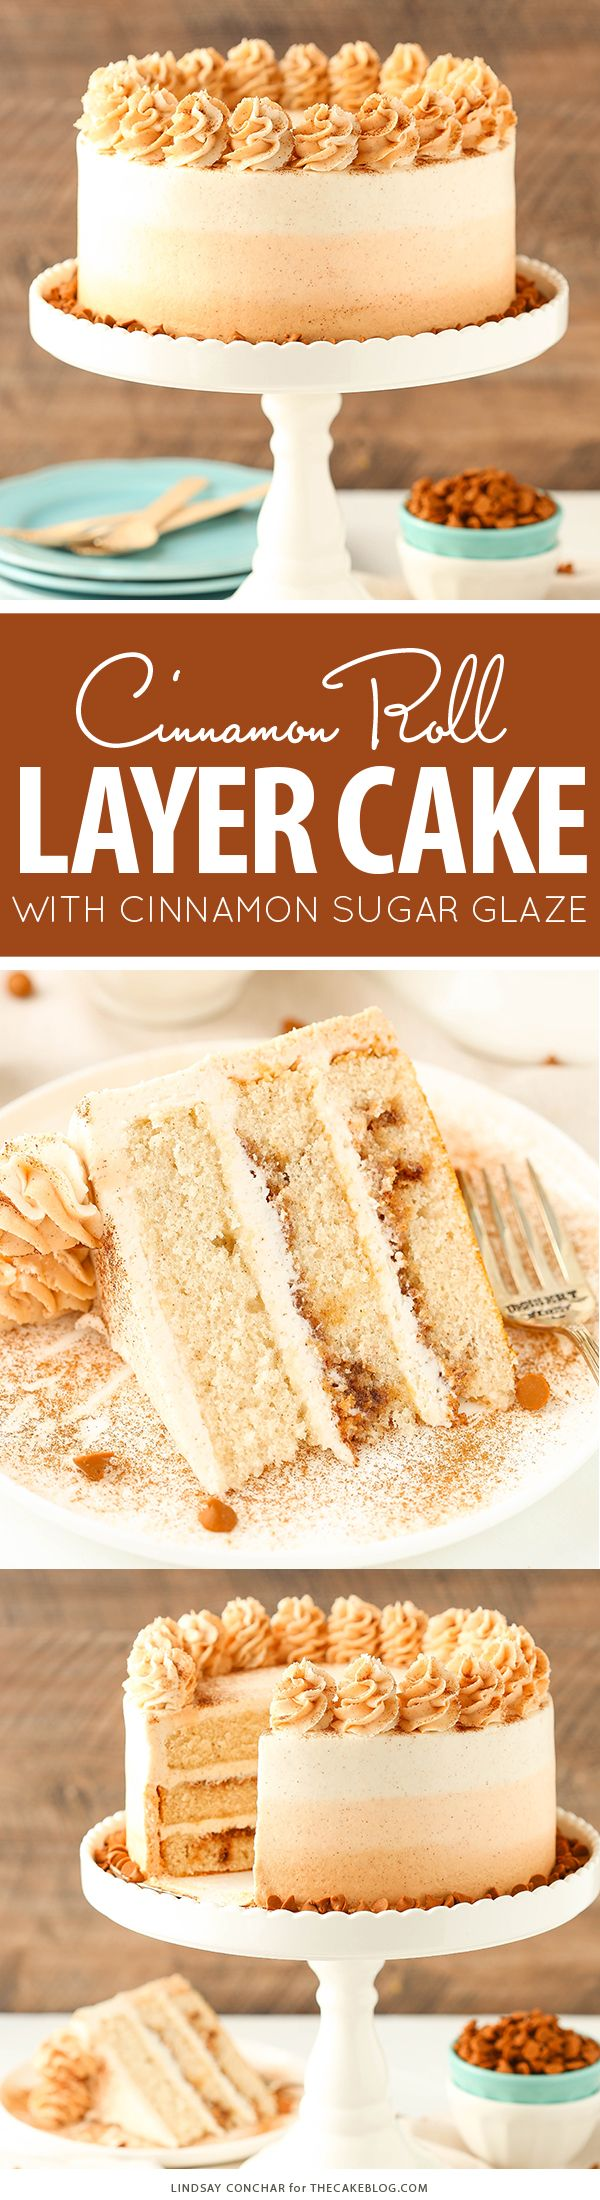 Cinnamon Roll Layer Cake - a recipe from the new cookbook Simply Beautiful Homemade Cakes by Lindsay Conchar | on TheCakeBlog.com